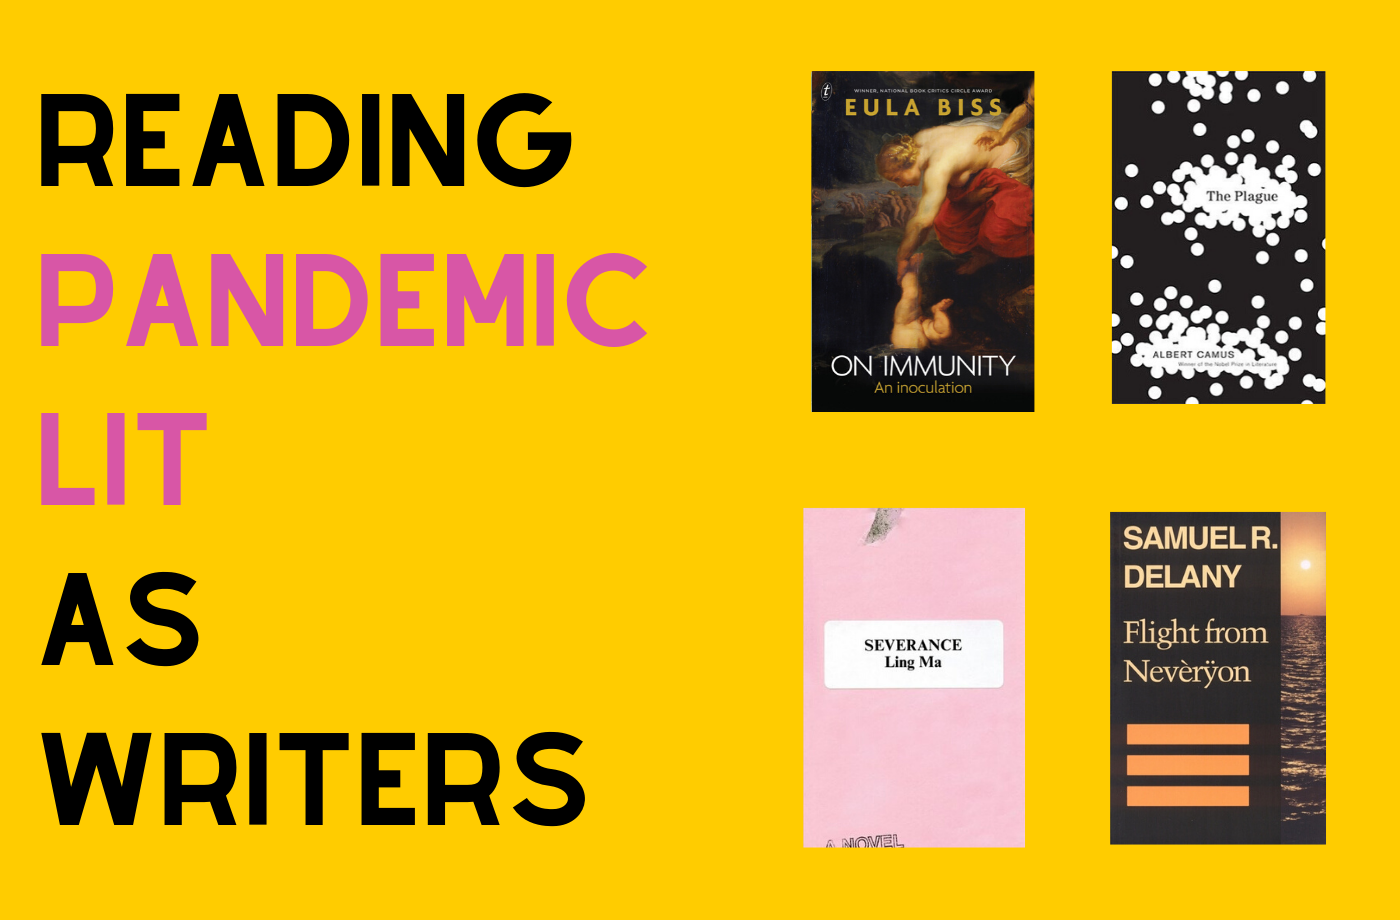 Catapult online classes: Megan Milks, 4 Weeks of Reading Pandemic Lit as Writers Online, Fiction, Nonfiction, Reading Group